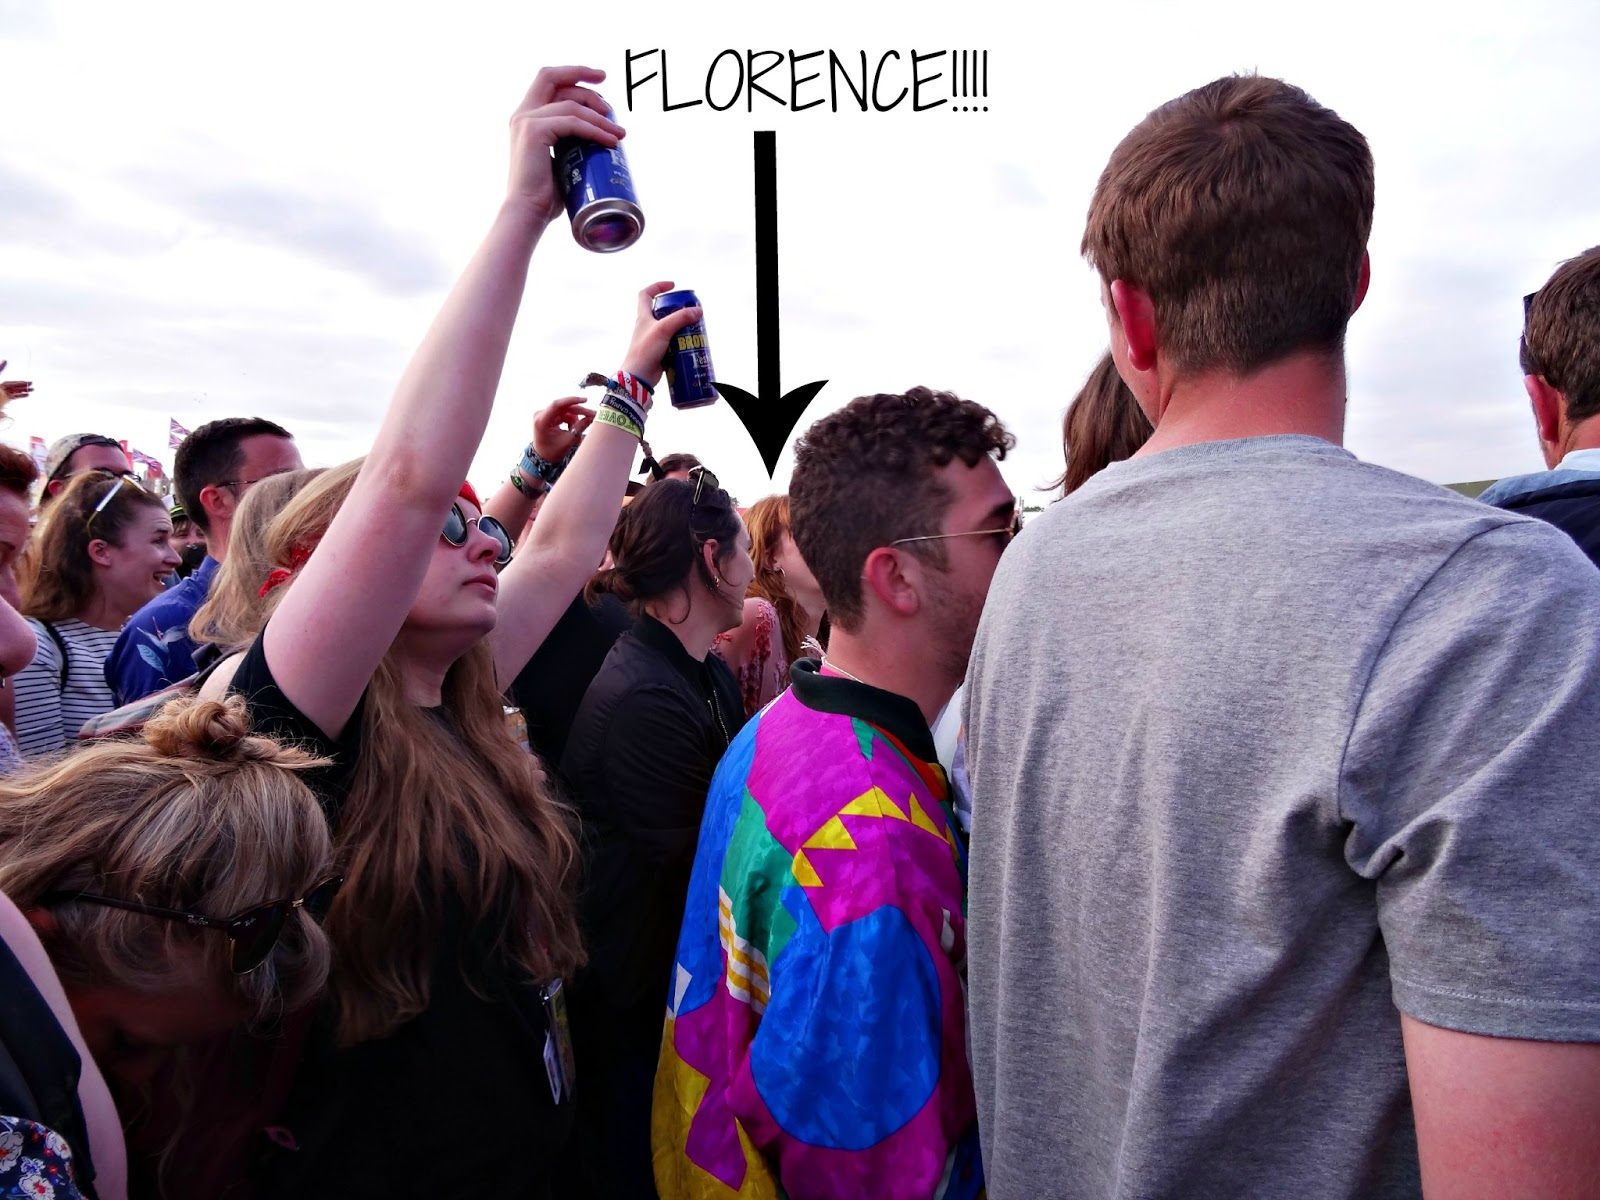 Florence partying at Glastonbury